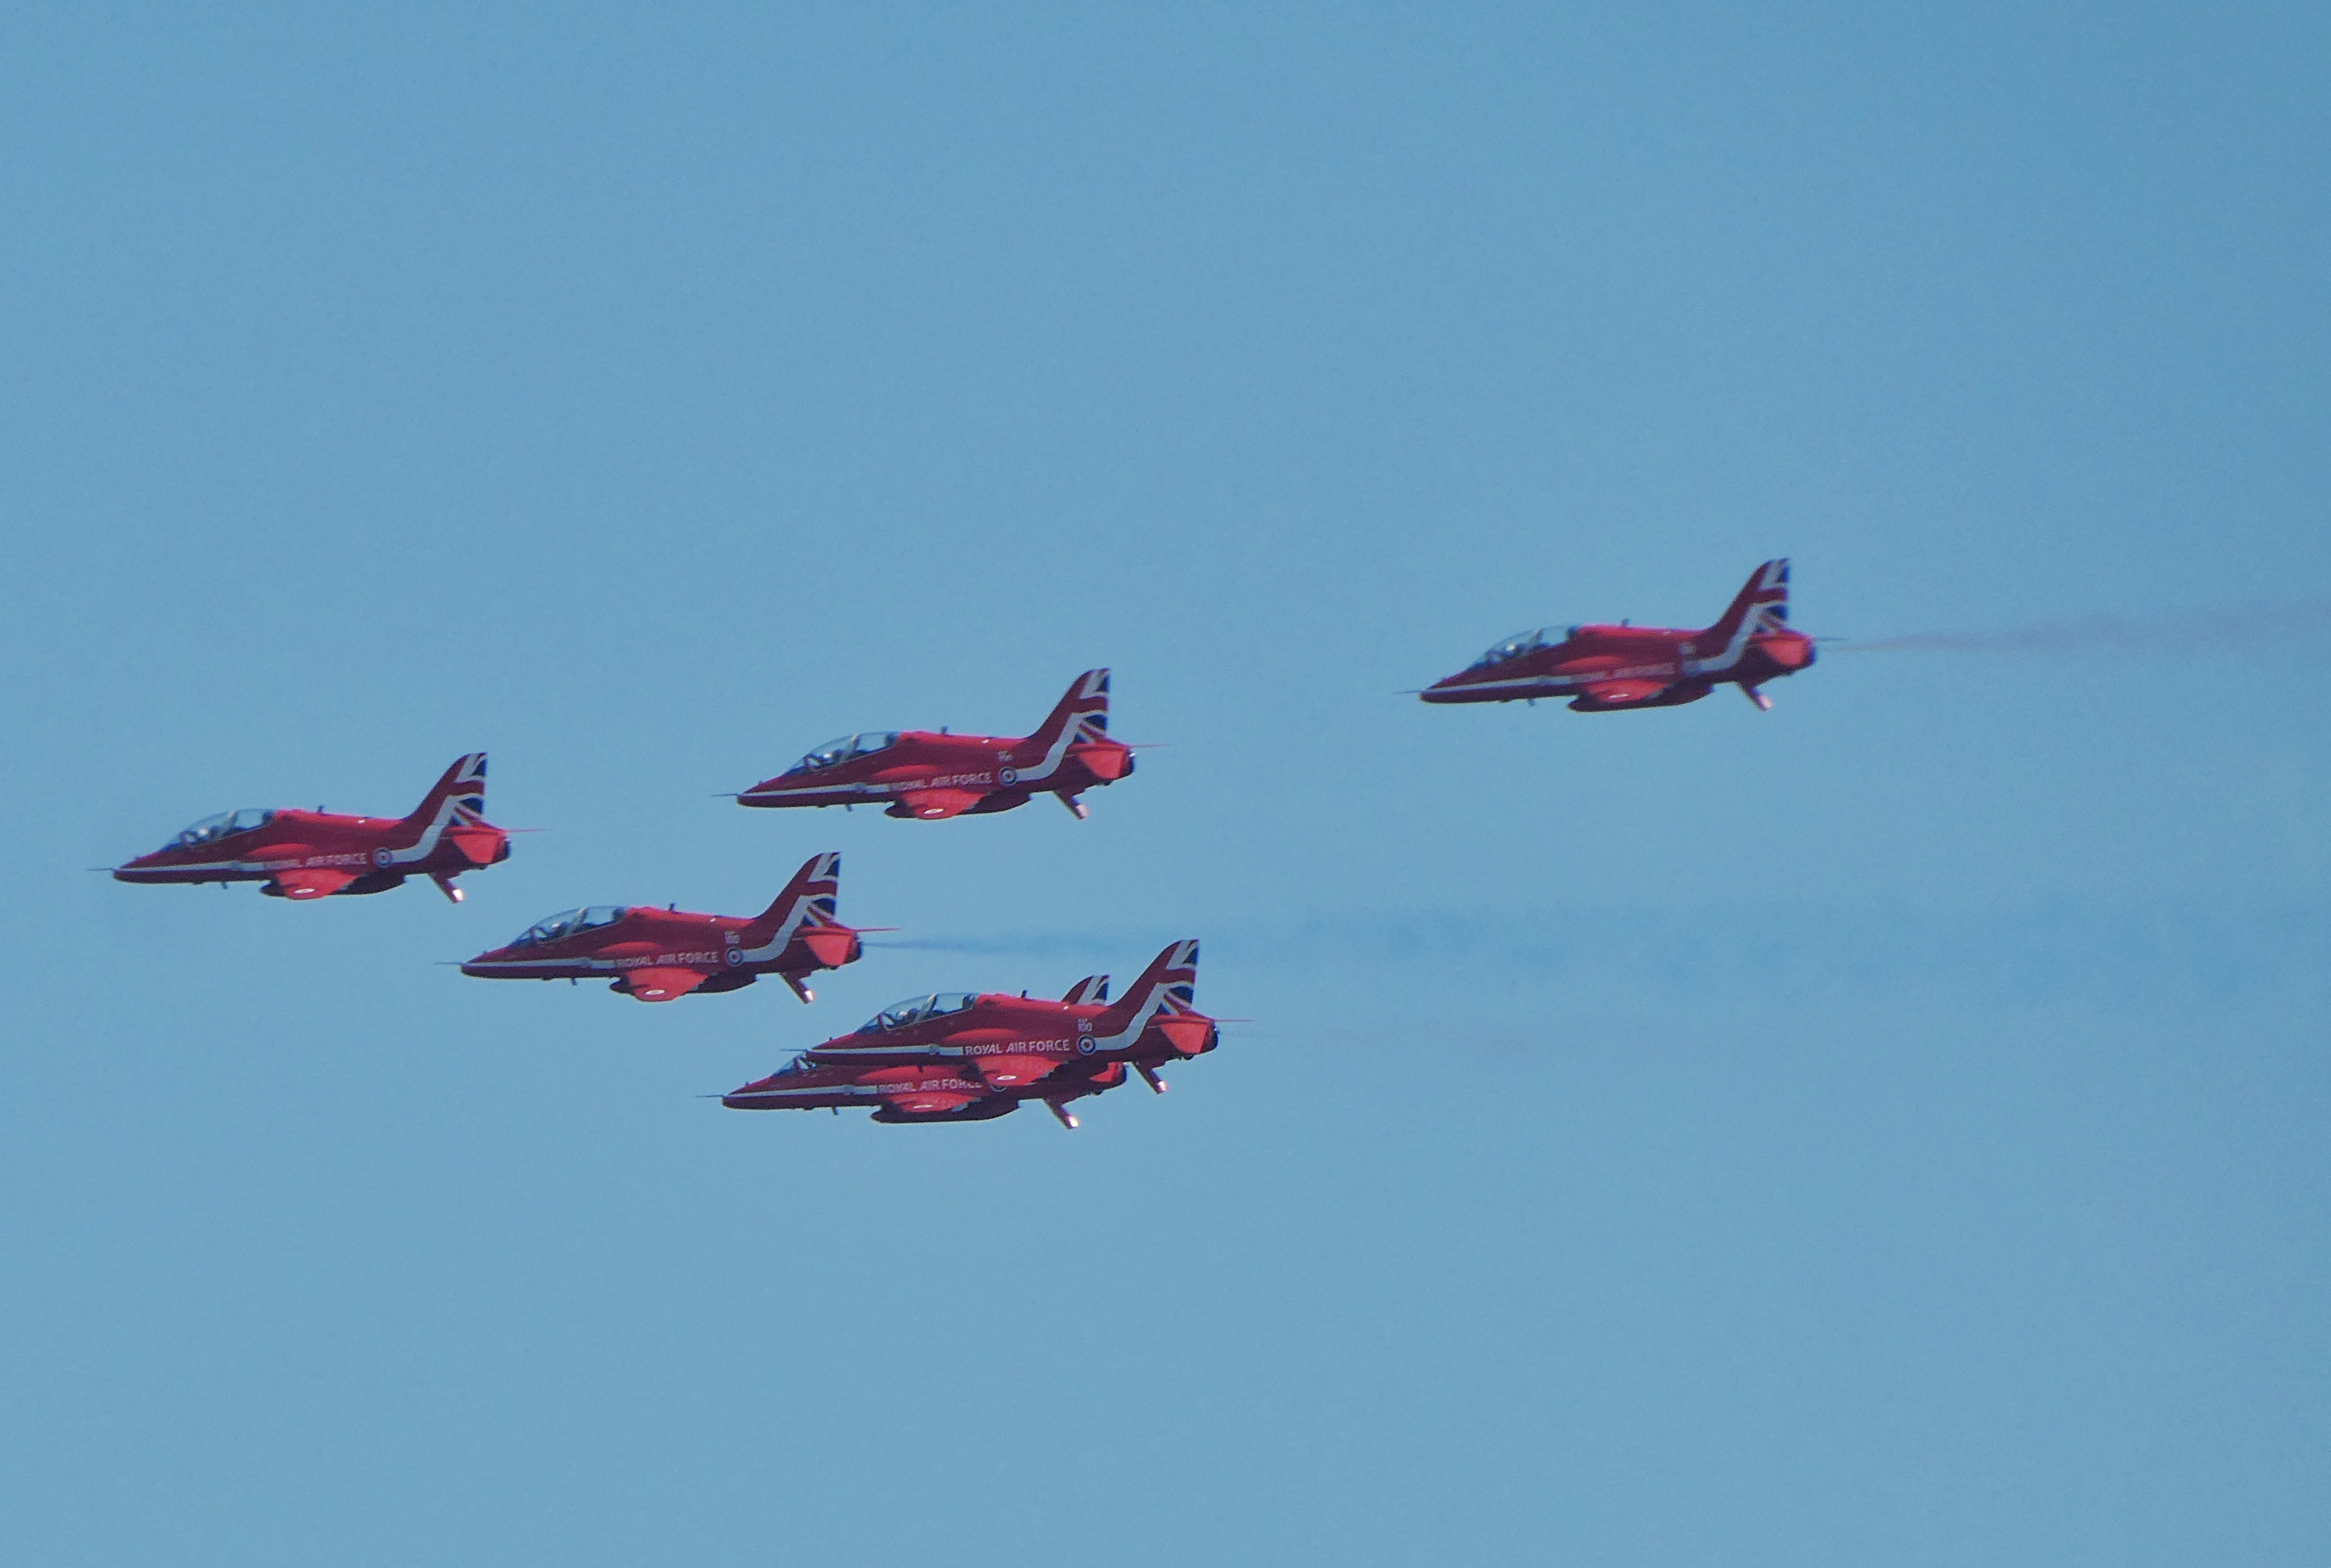 five red-and-black fighter jets